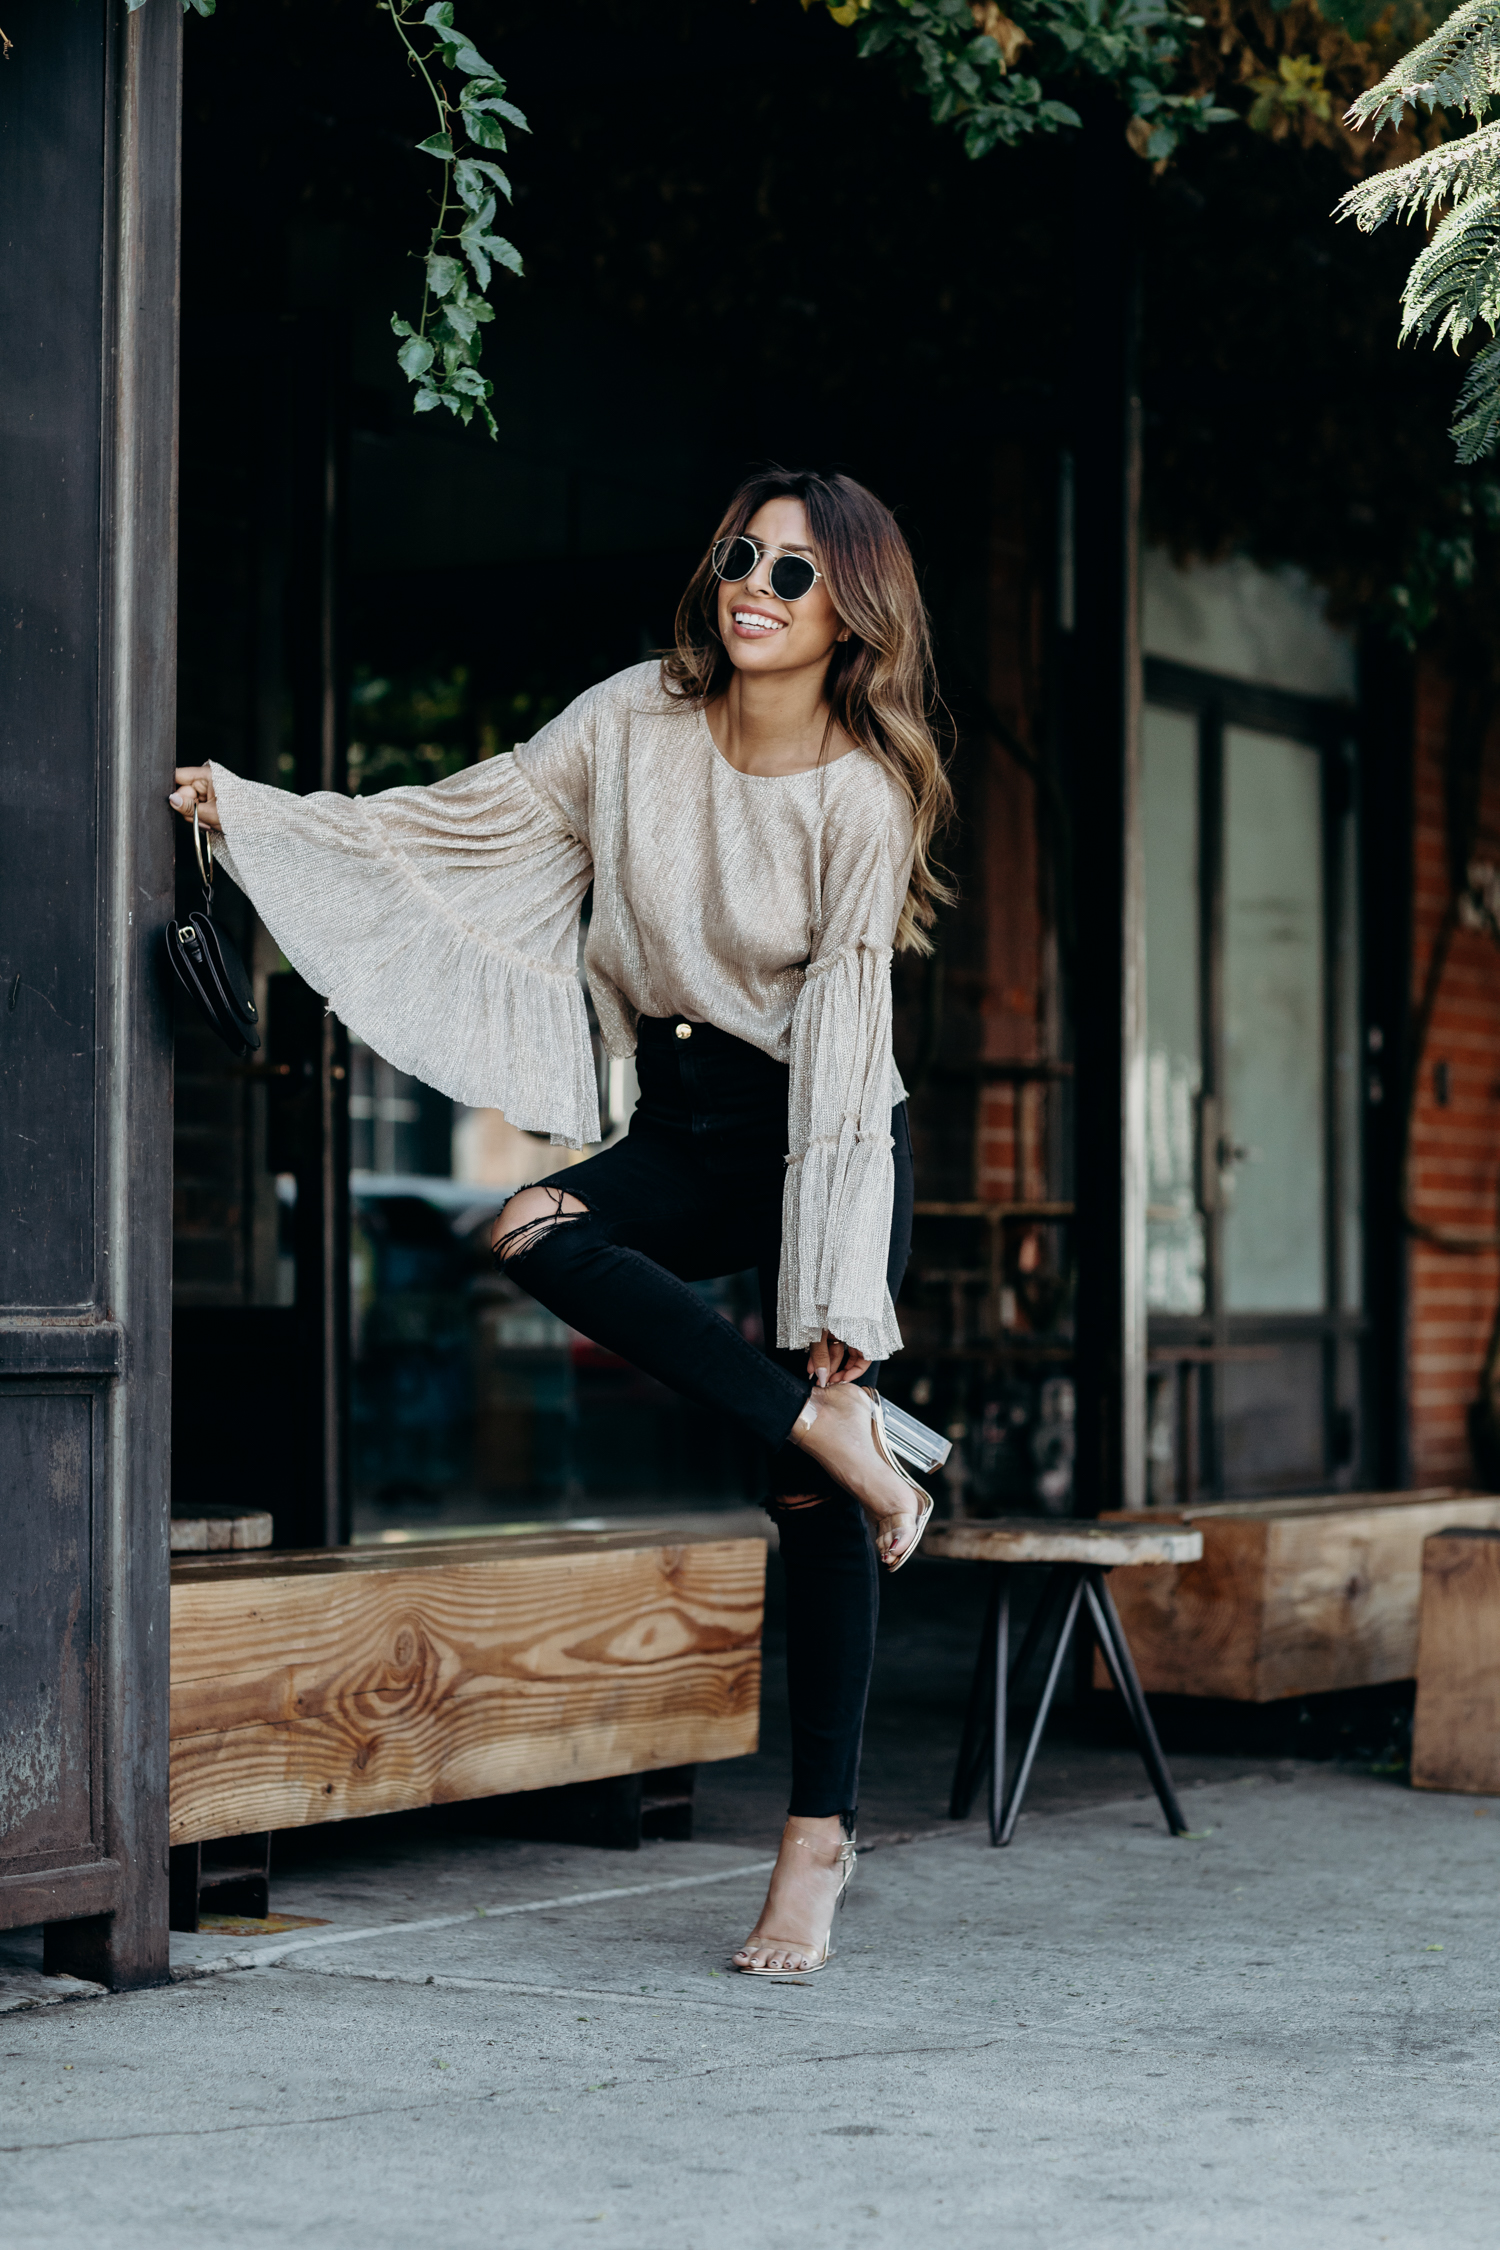 clear heels from Steve Madden on Everyday Pursuits